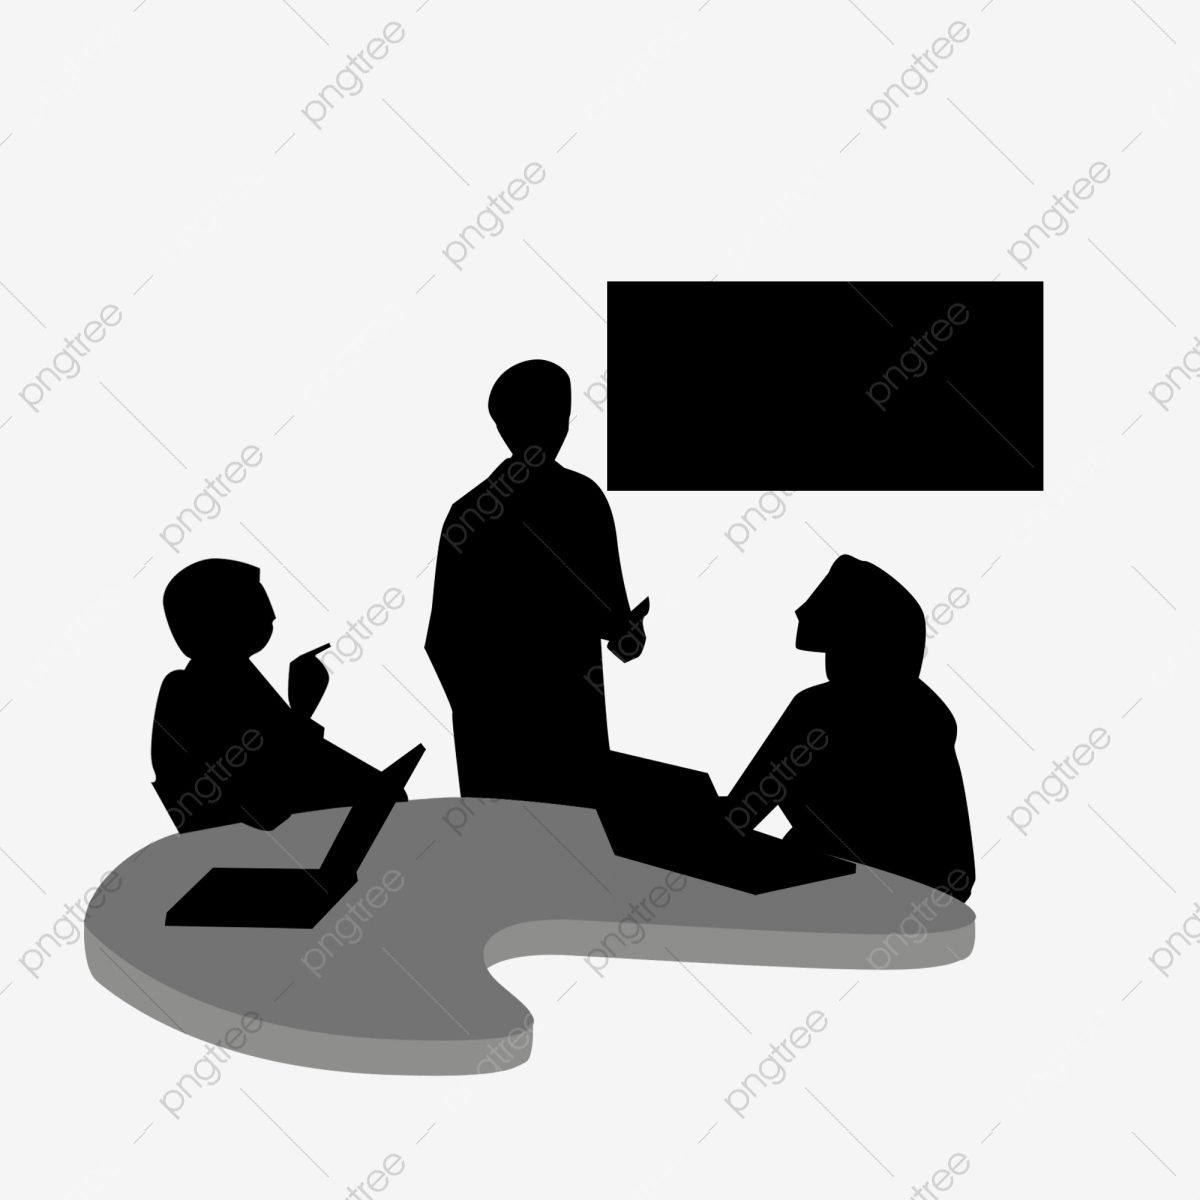 Business meeting silhouette people. Businessman clipart marketing team